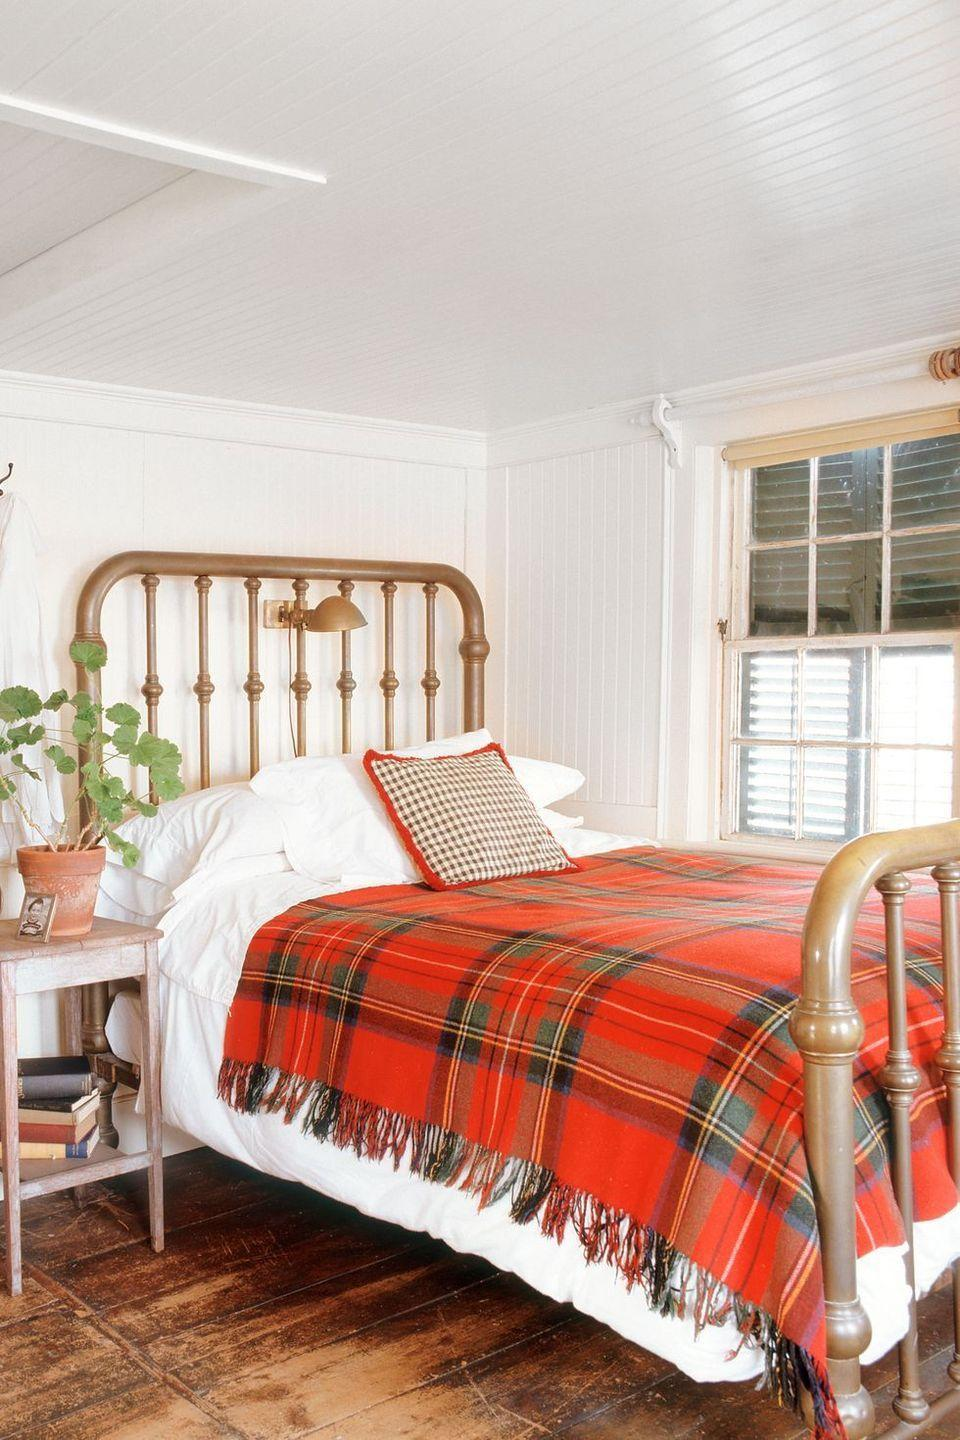 <p>Even your bedroom could use a winter refresh: Keep it simple by dressing the bed with a plaid throw pillow and coordinating blanket. </p>